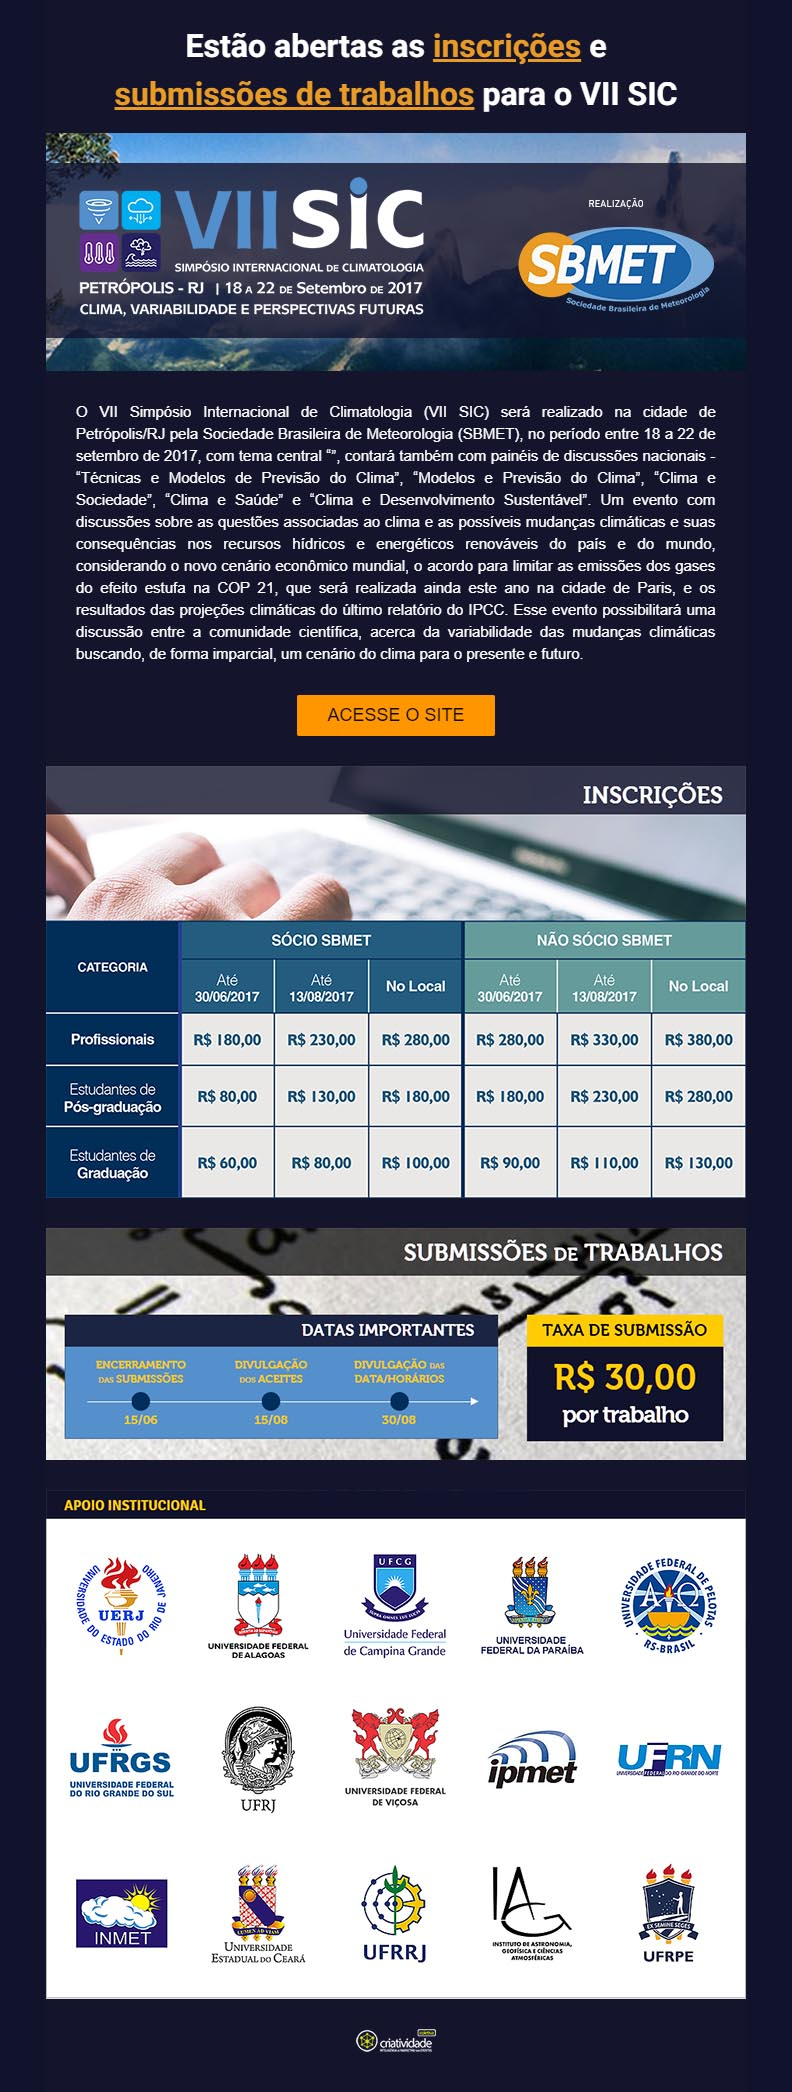 E-MAIL MARKETING E FACEBOOK